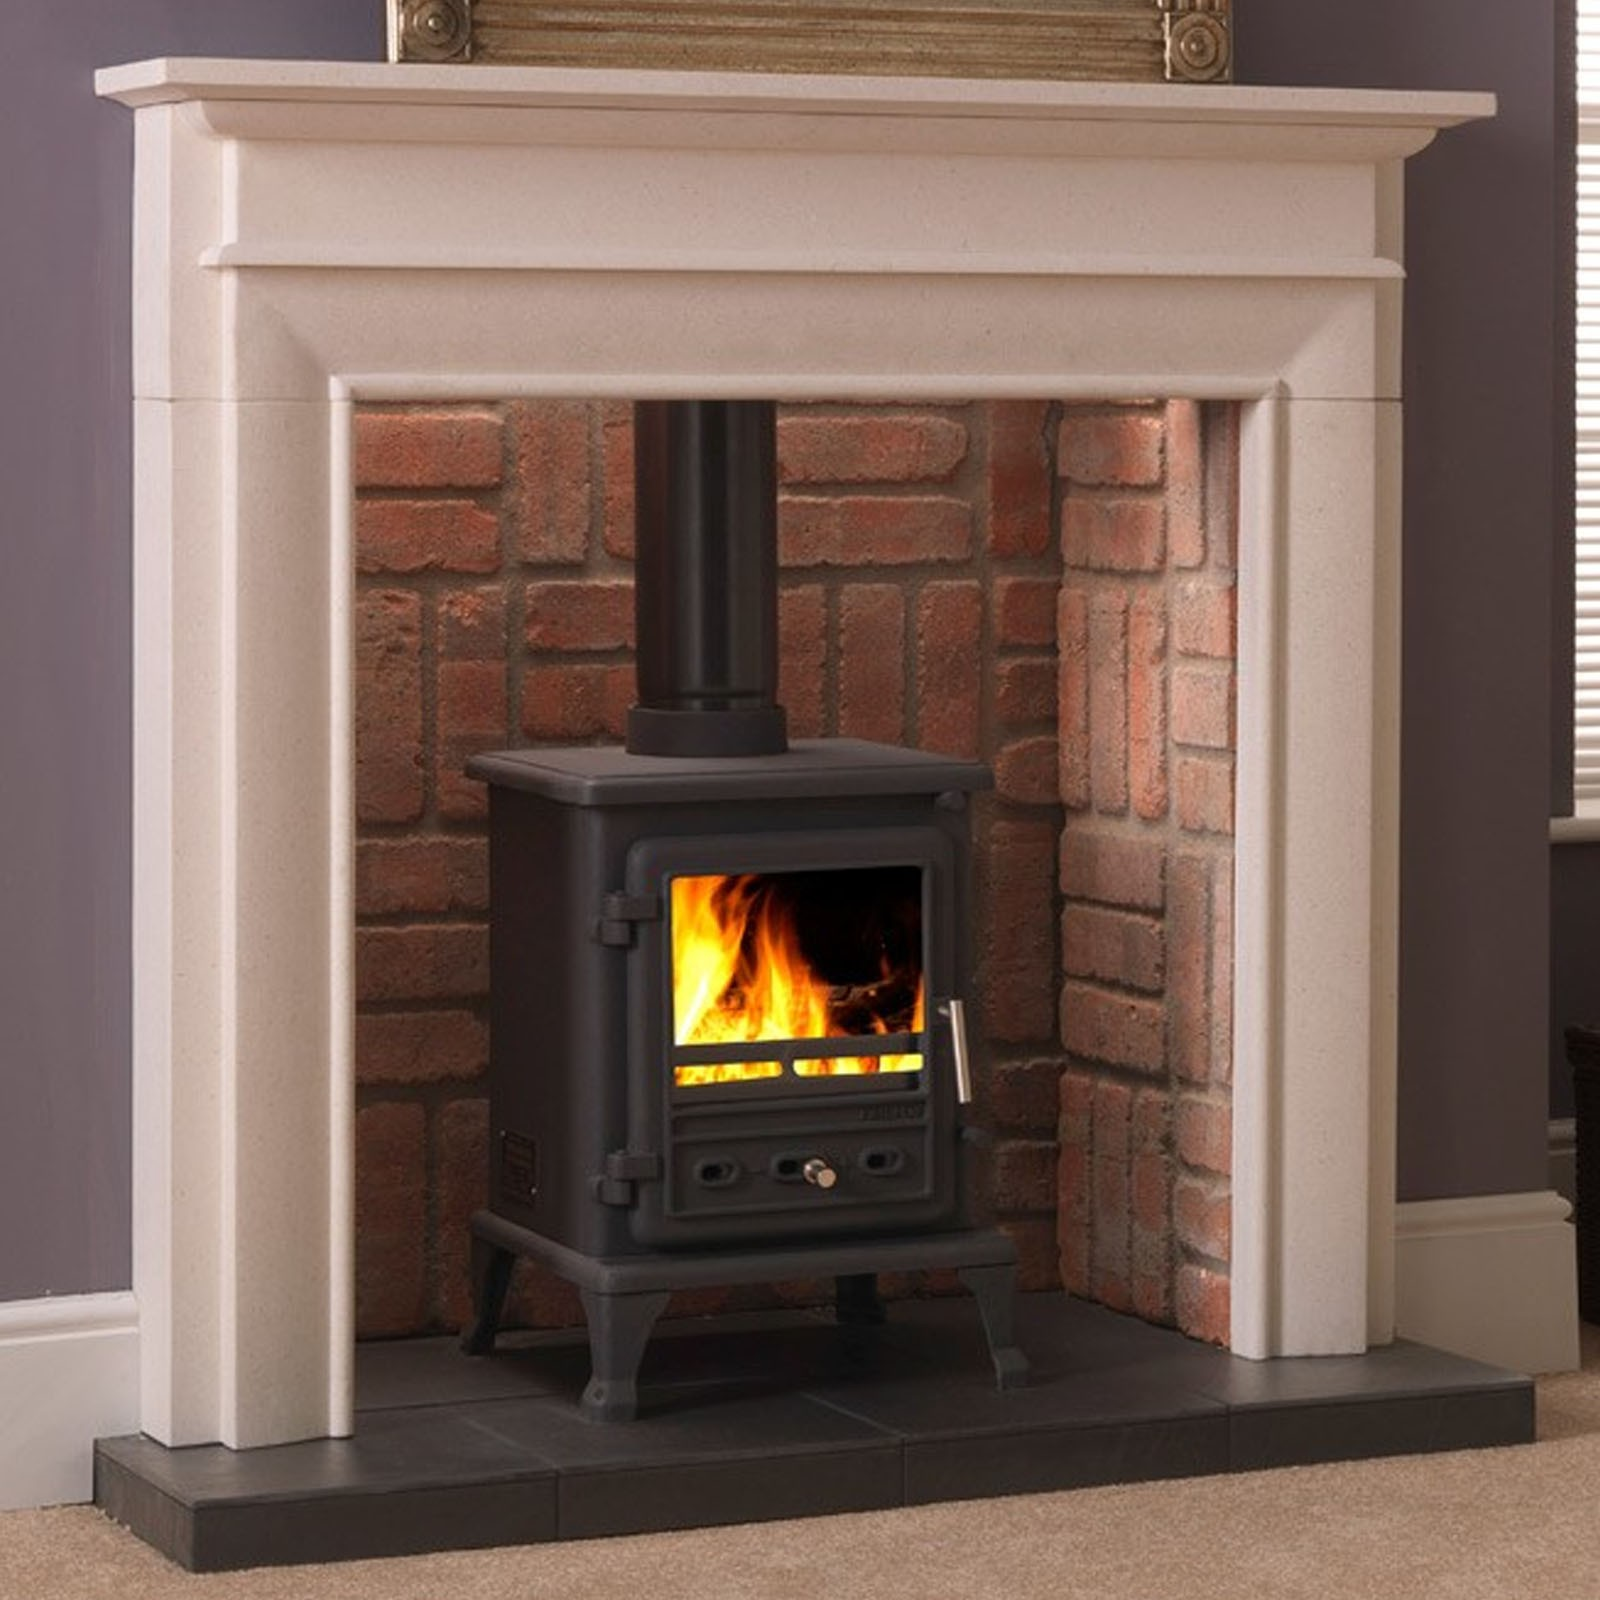 fast free delivery gallery fairfield stone fireplace with optional rh fireplaces4life co uk stone fireplace stove stone fireplace with wood stove